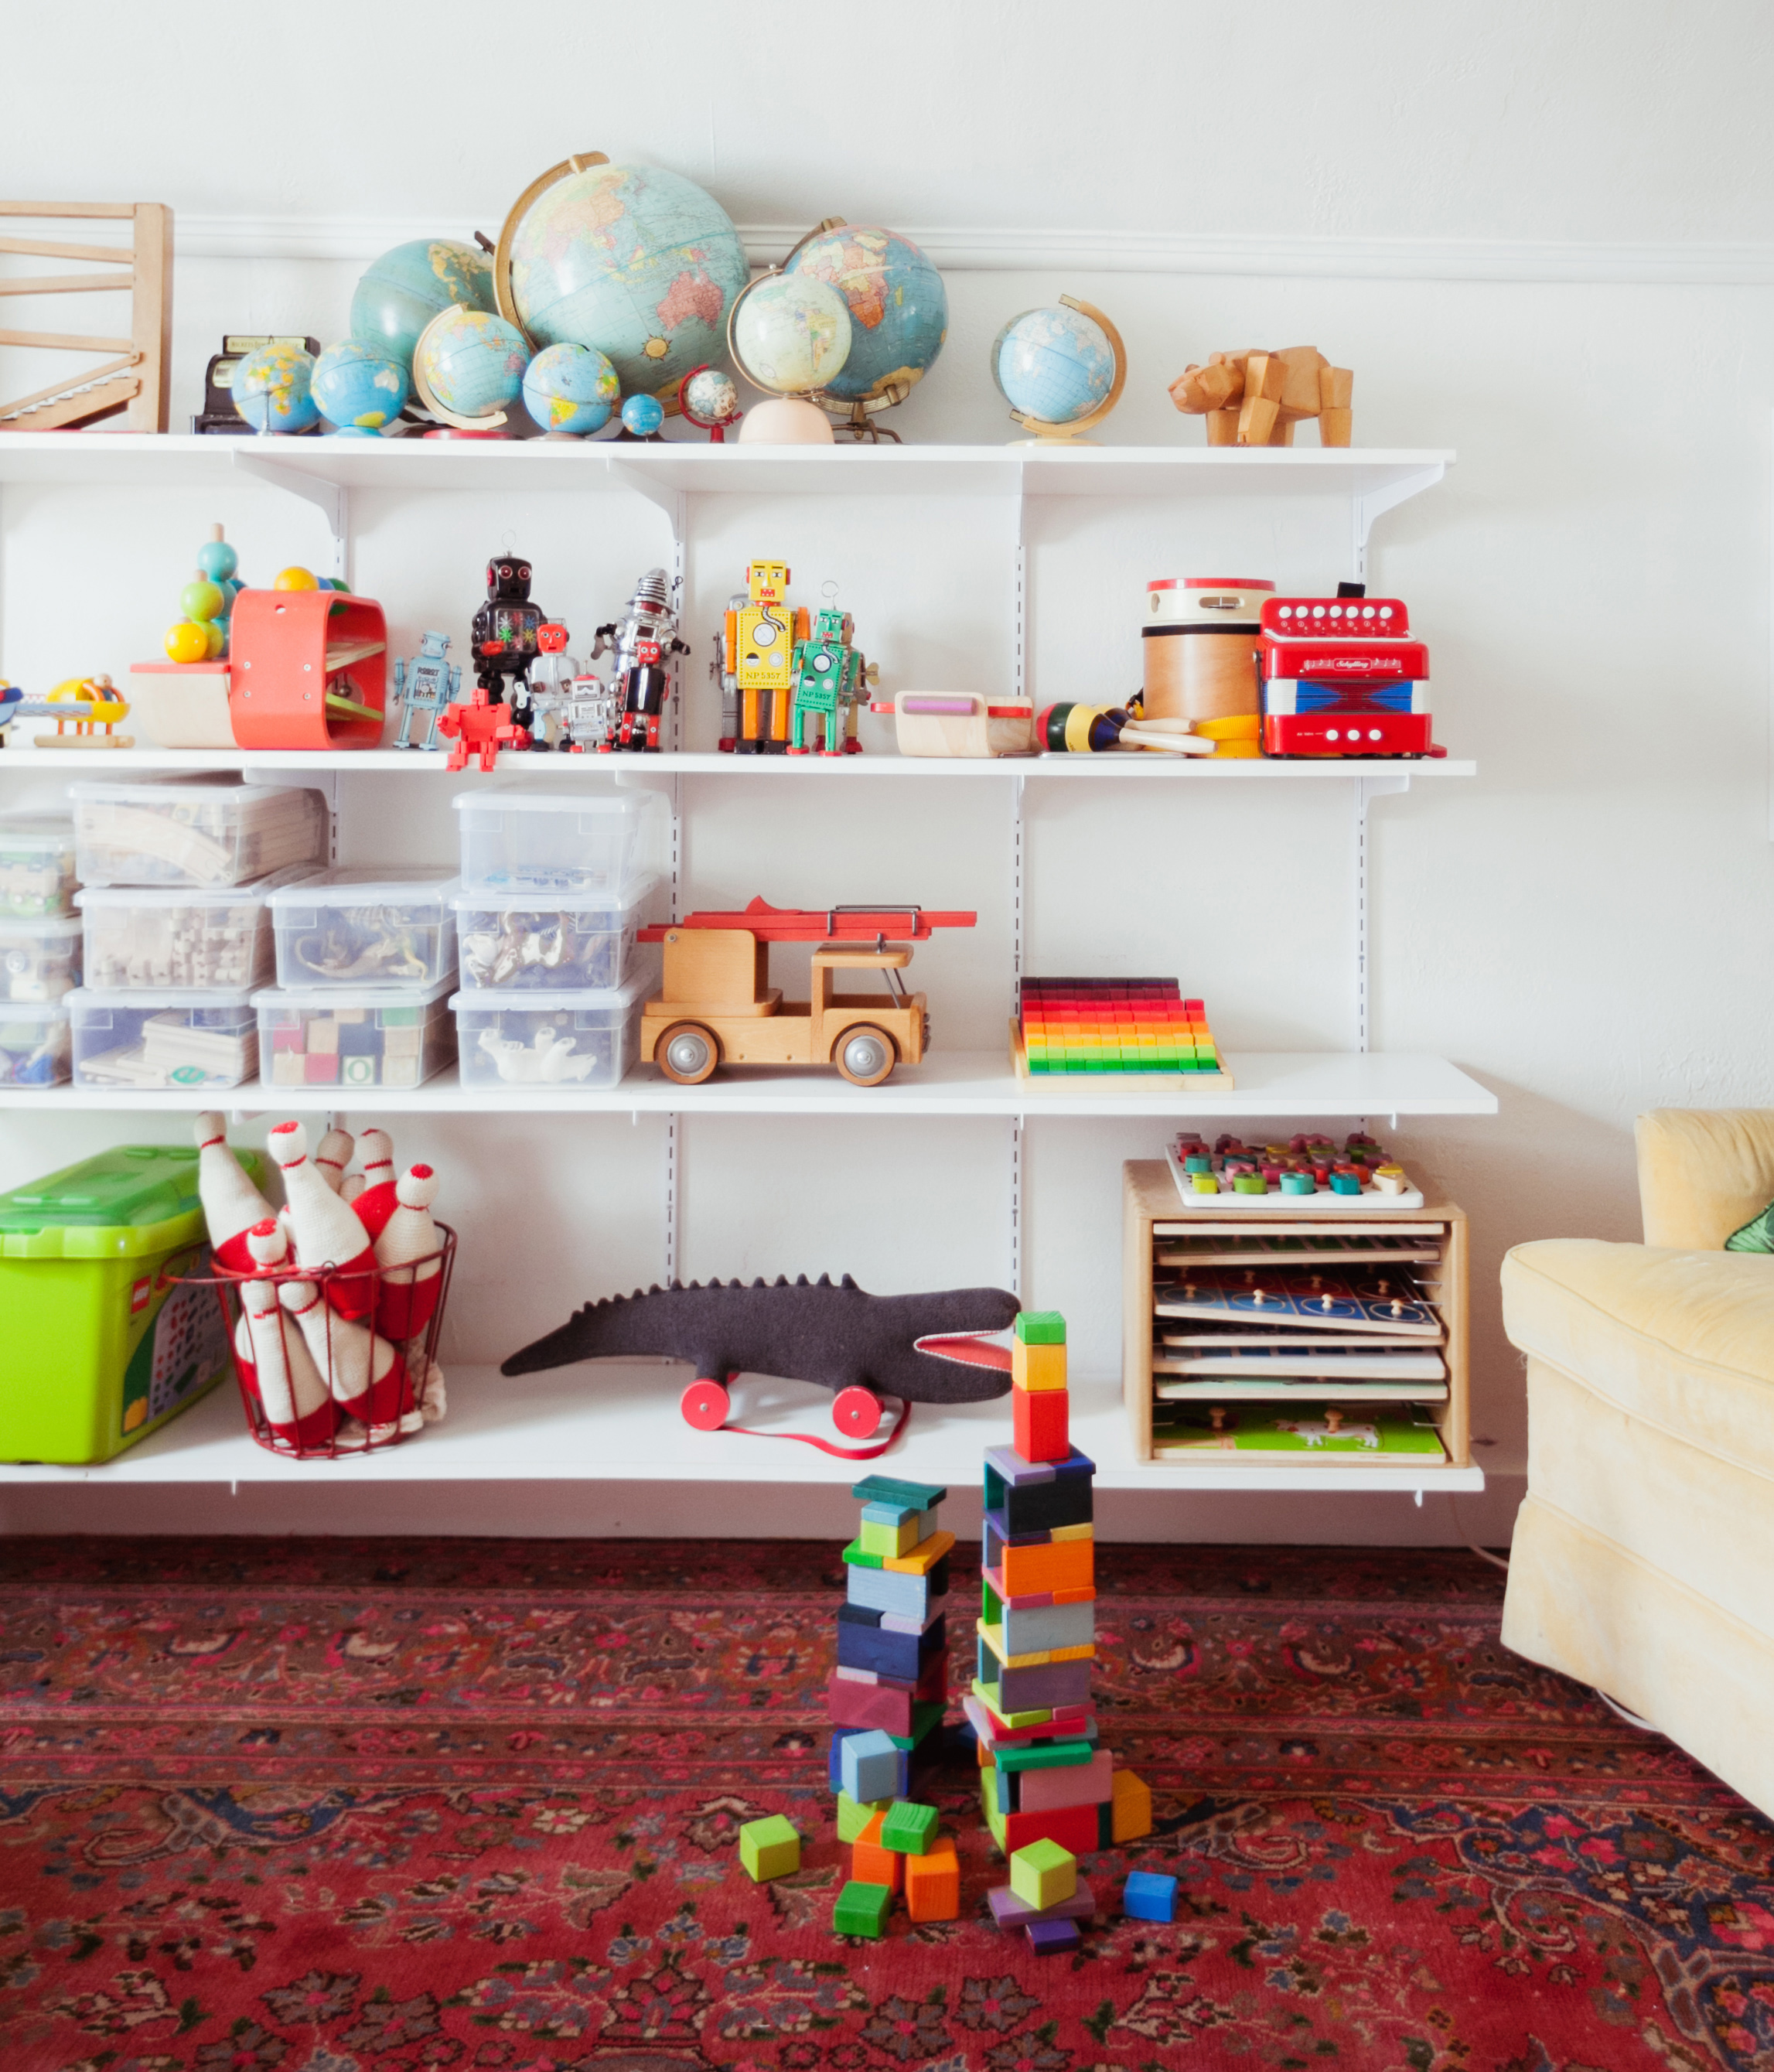 191_Toy Storage, Photo by Heather Zweig, with stylist Jordan Ferney.jpg